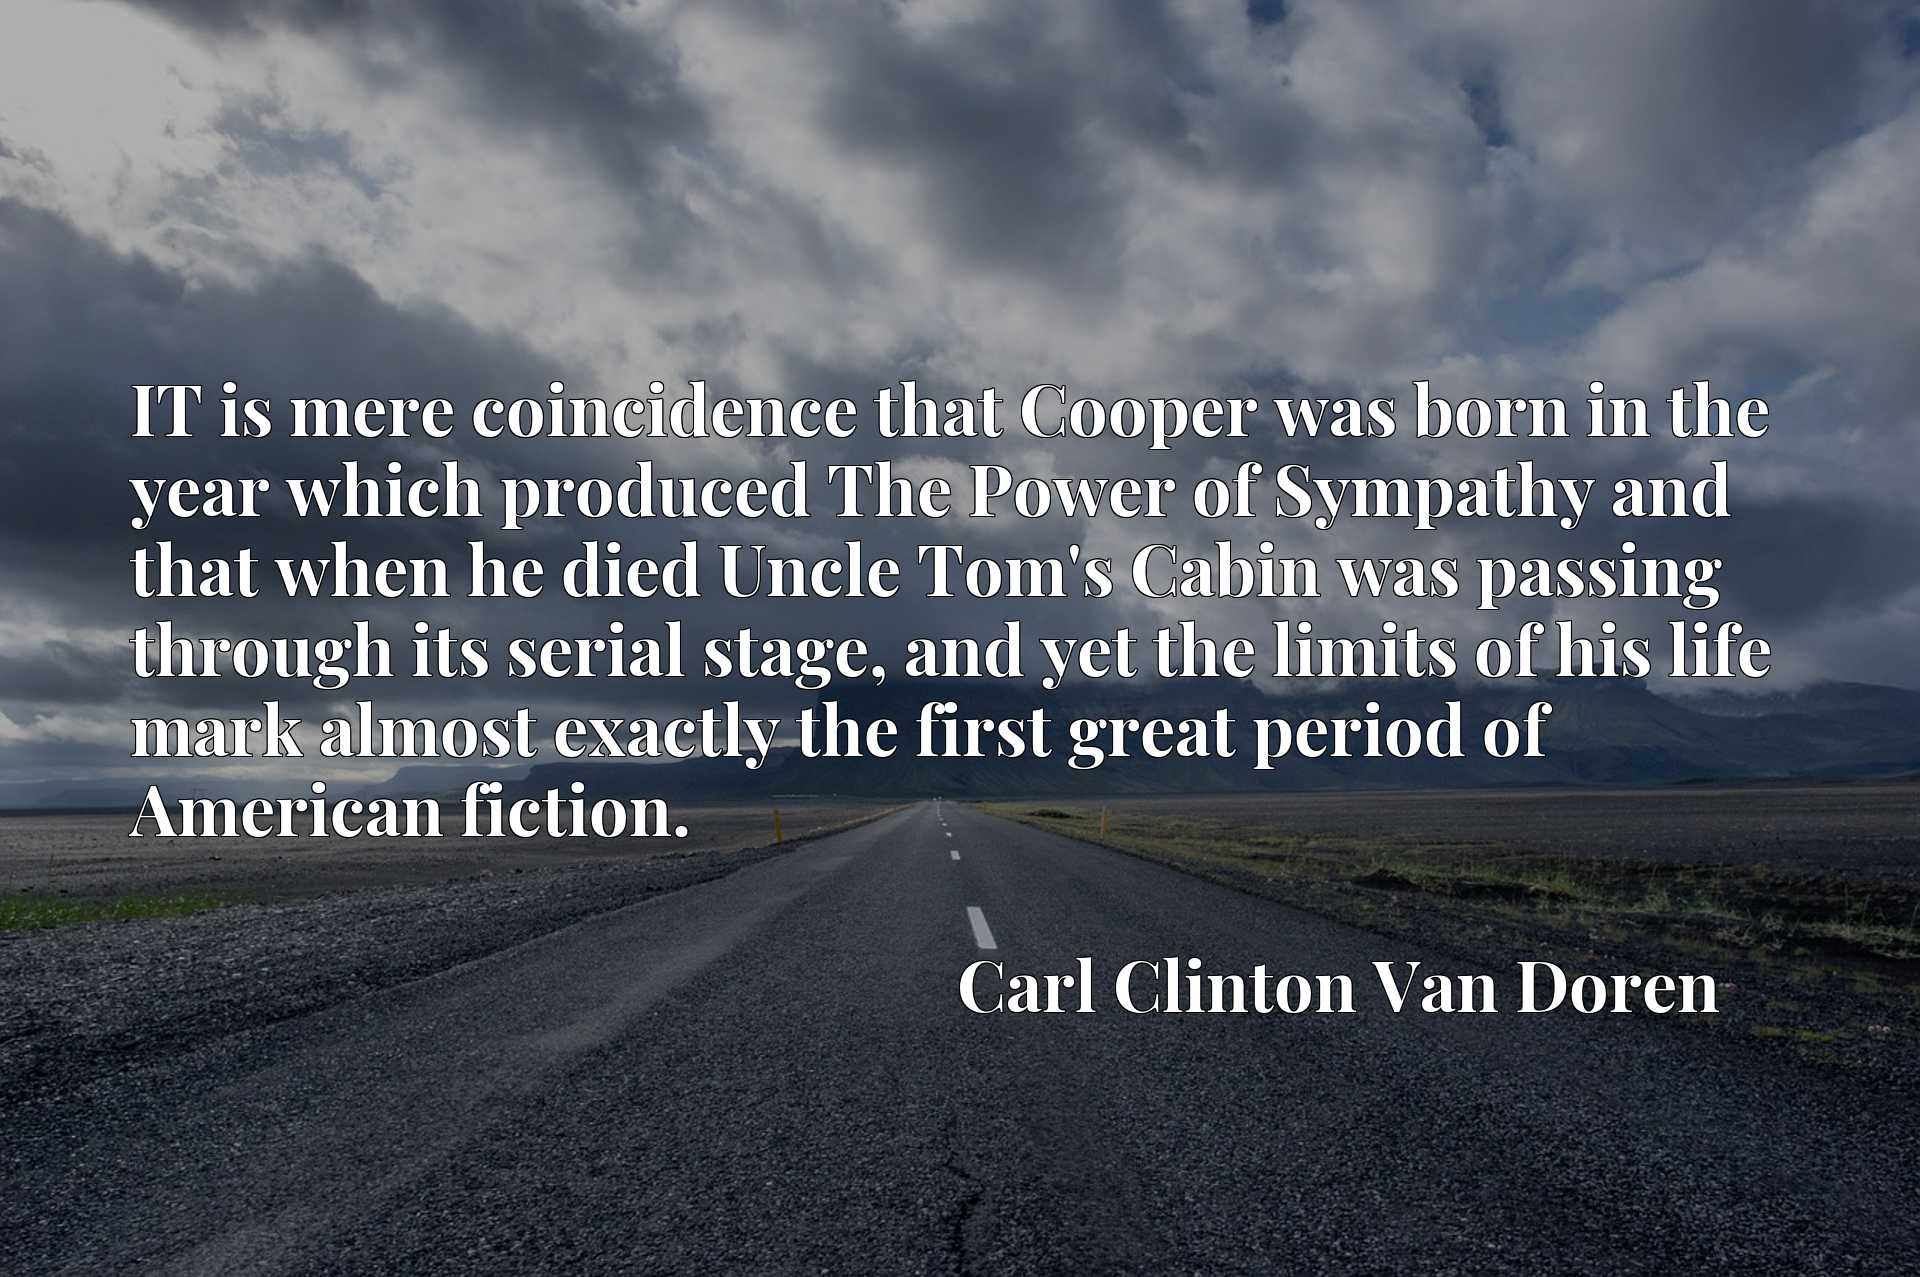 Quote Picture :IT is mere coincidence that Cooper was born in the year which produced The Power of Sympathy and that when he died Uncle Tom's Cabin was passing through its serial stage, and yet the limits of his life mark almost exactly the first great period of American fiction.